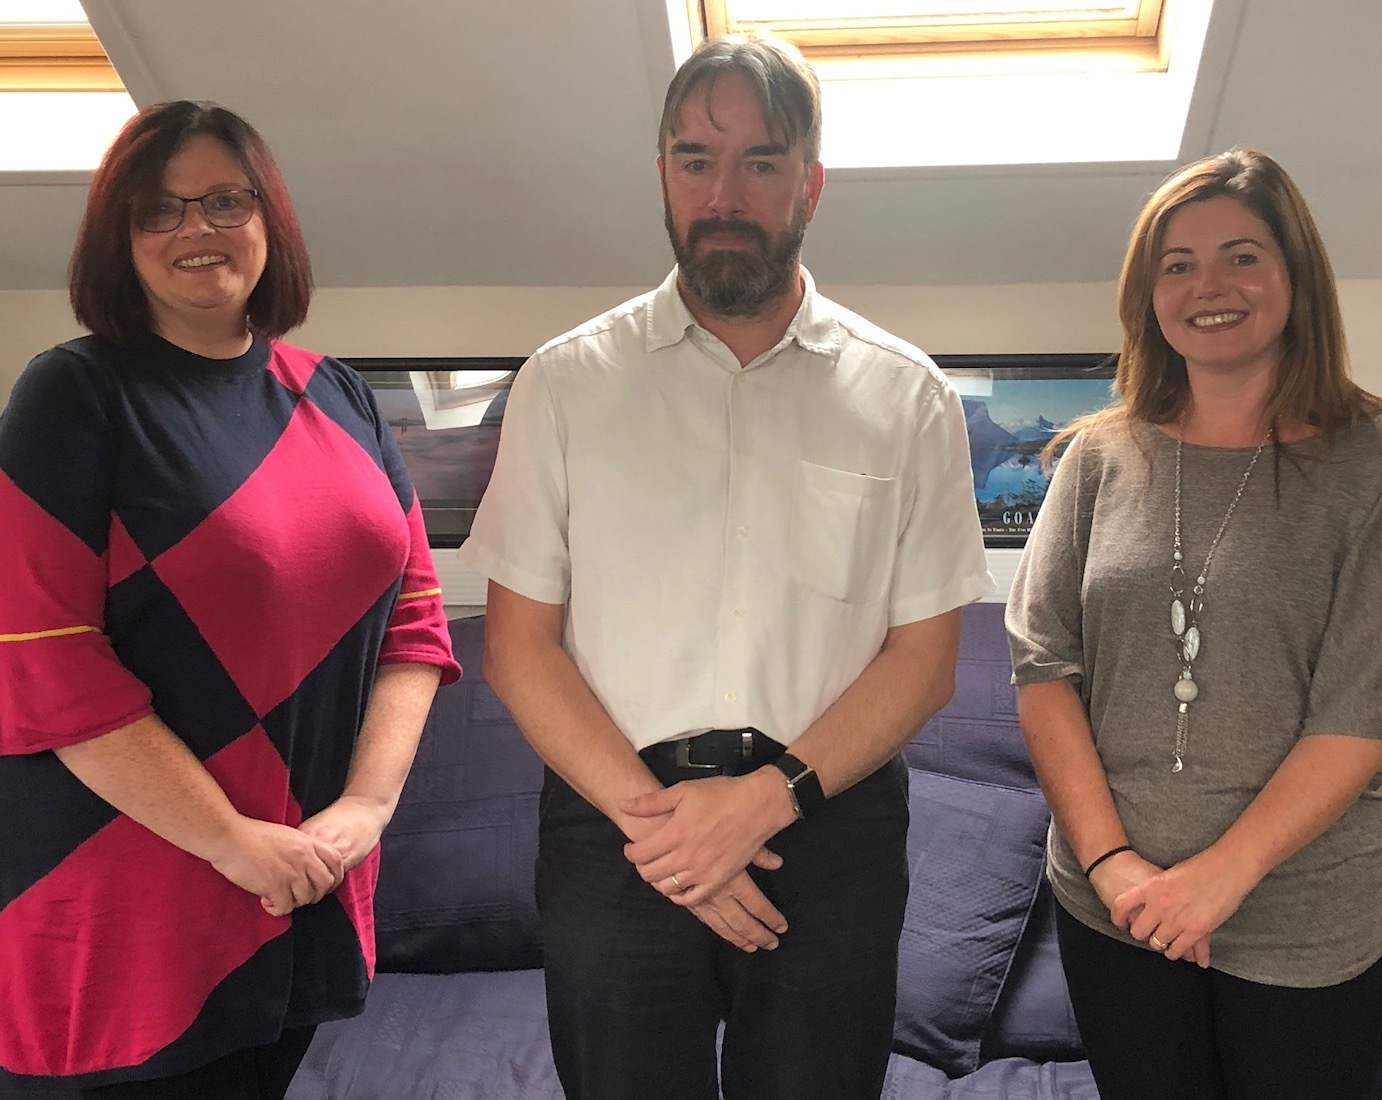 Staff from the Affinity Care anticoagulation team, from left, Berni Cahill, assistant practitioner in cardiology, Dr Matt Fay, GP and clinical chief executive of Affinity Care and Jane Patrickson, practice nurse